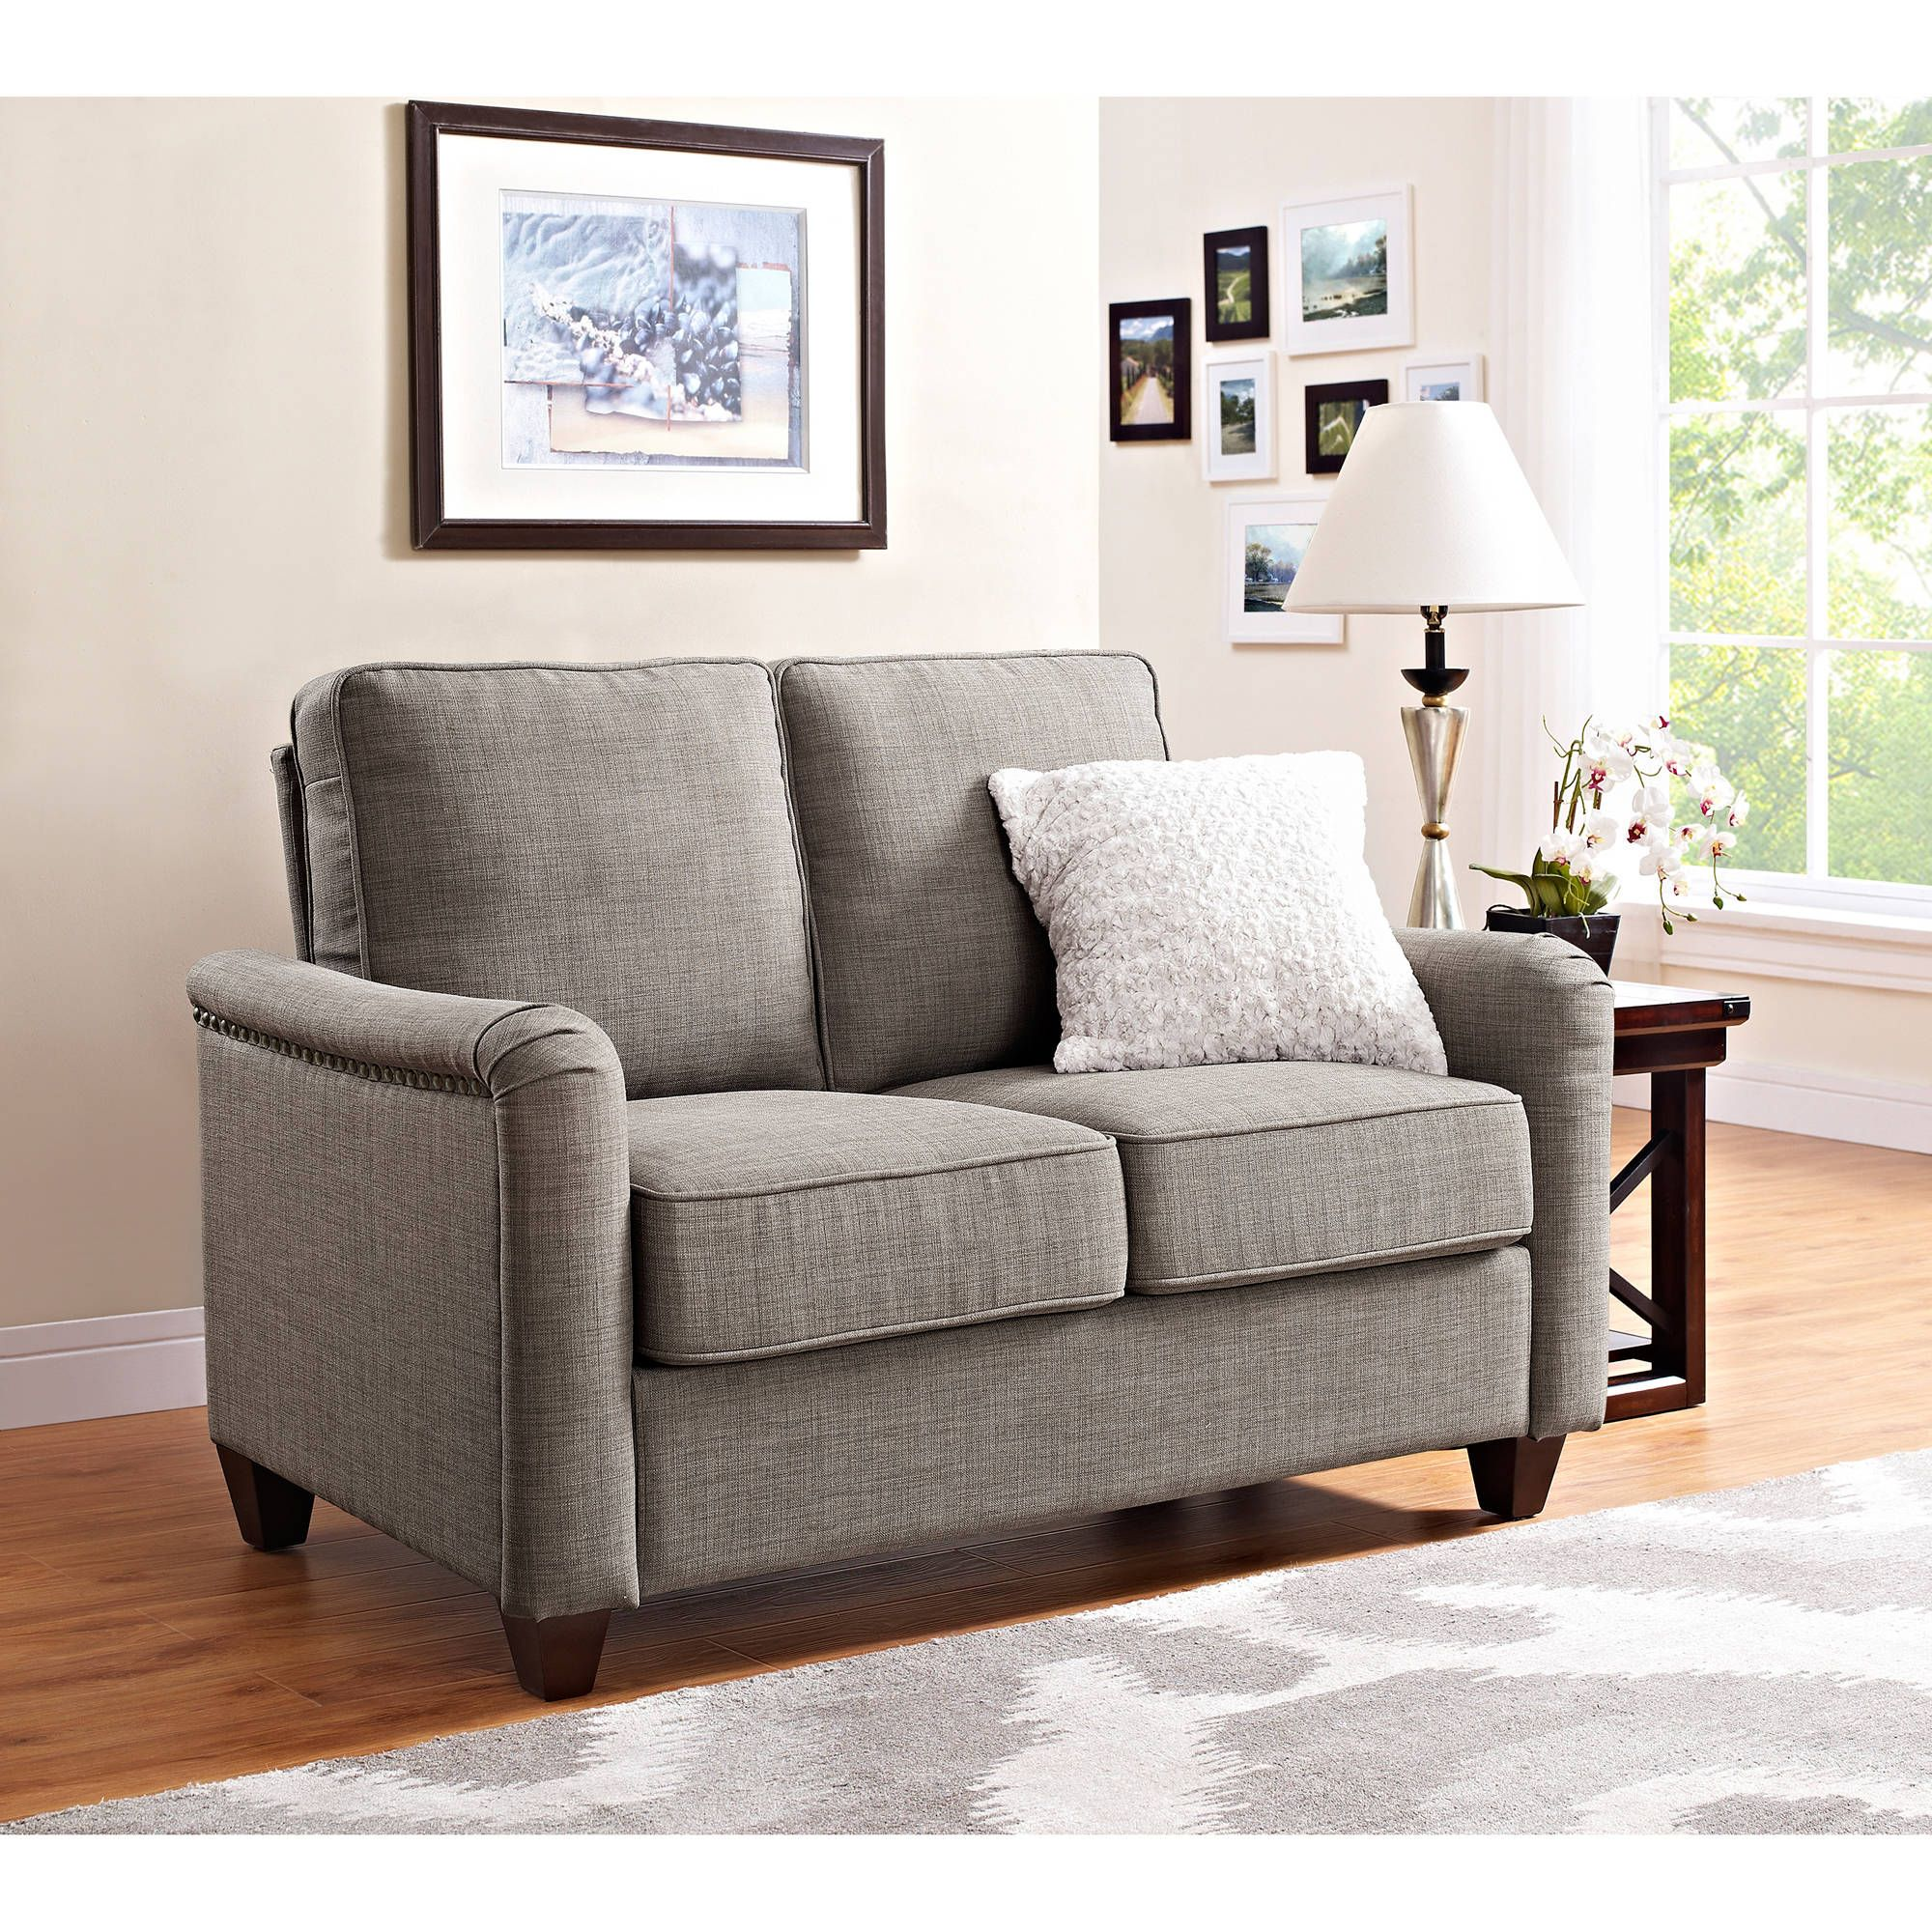 free shipping buy better homes and gardens grayson loveseat with rh pinterest com